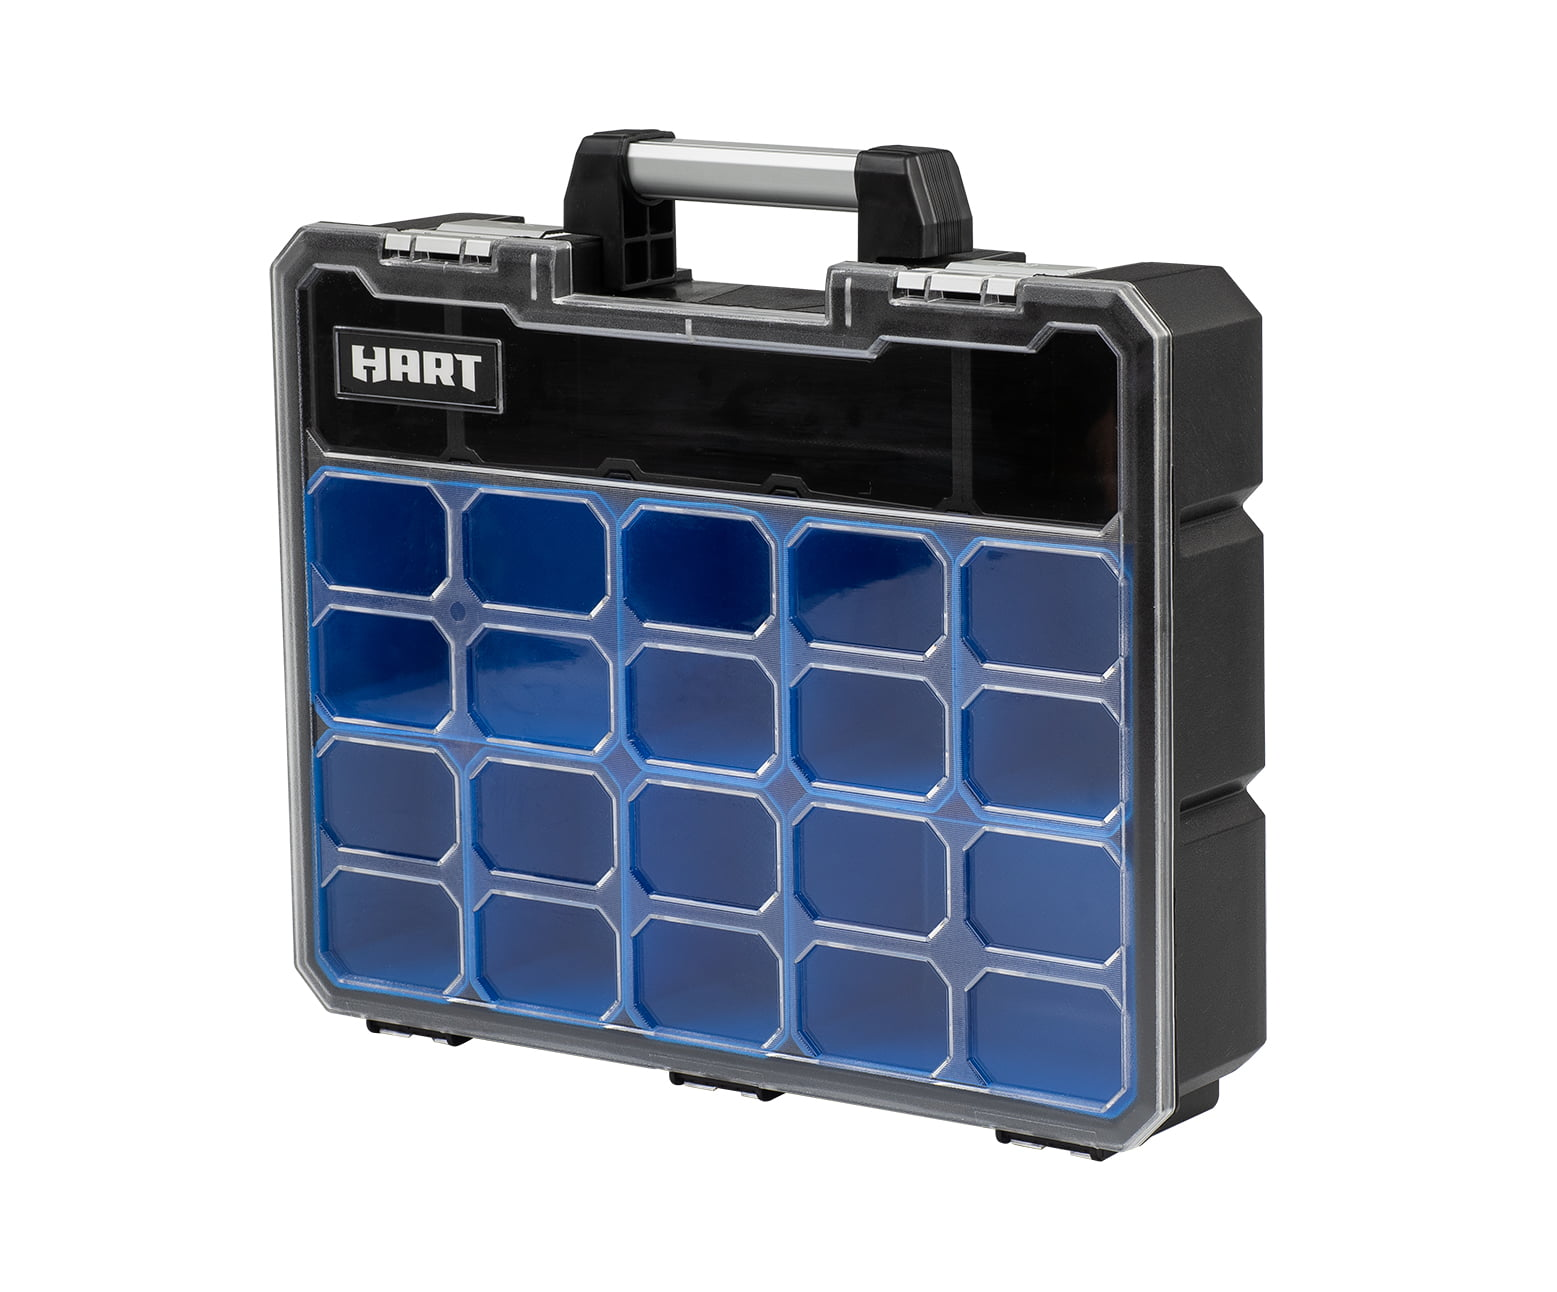 Black /& Blue 9 Deep Removable Compartments Small Parts Organizer /& Tool Box